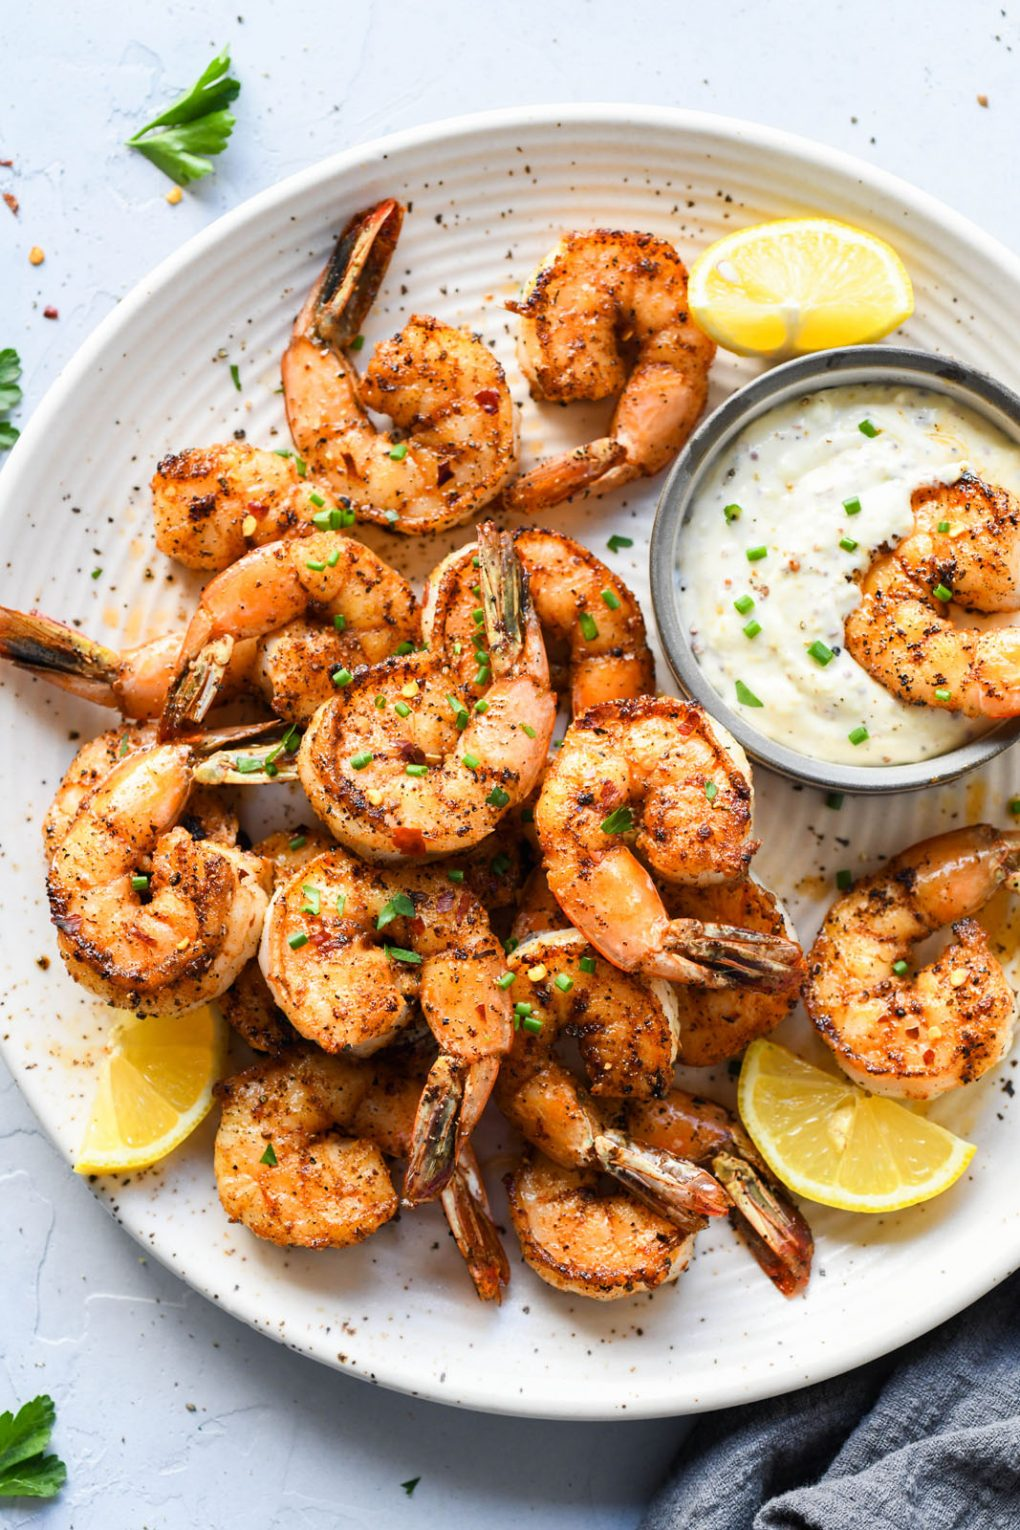 Light speckled plate of cajun spiced shrimp topped with snipped chives. Lemon wedges on the plate and a small bowl of aioli.